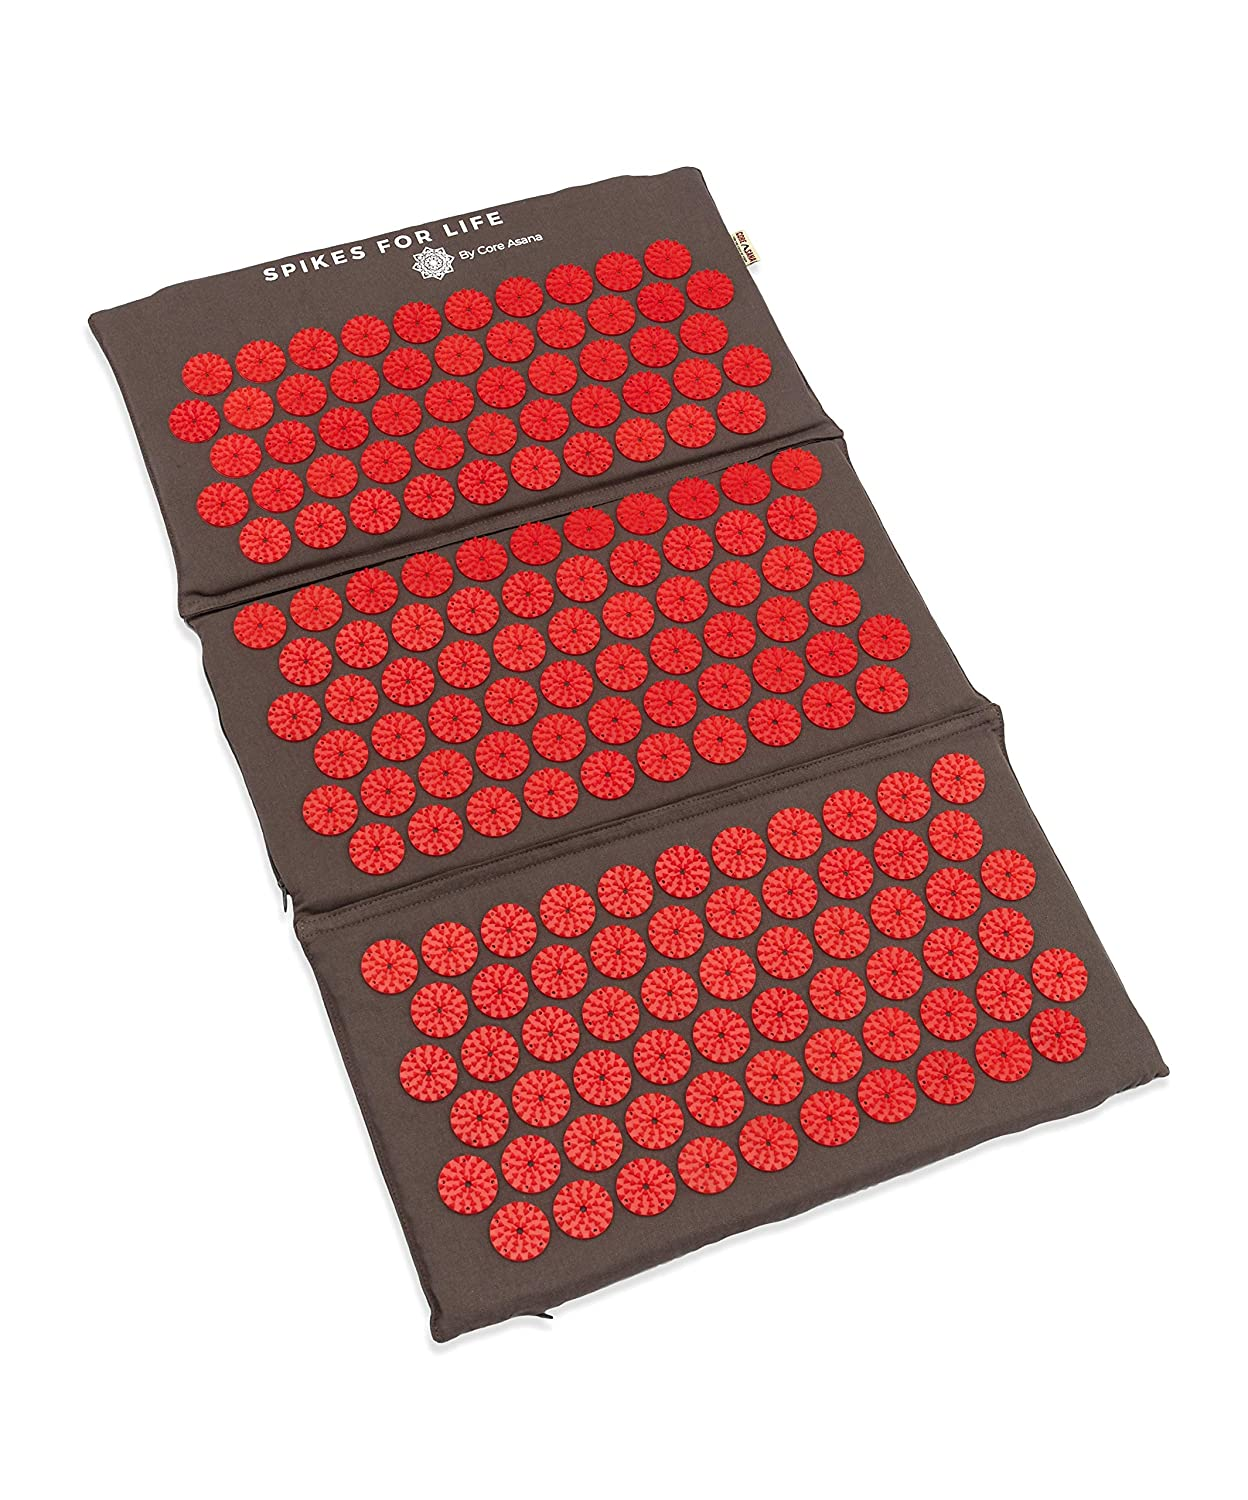 Red Acupressure spike Massager Spikes for Life Detachable Accupressure Reflexology Mat Pillow Set with Printed Meridian Points